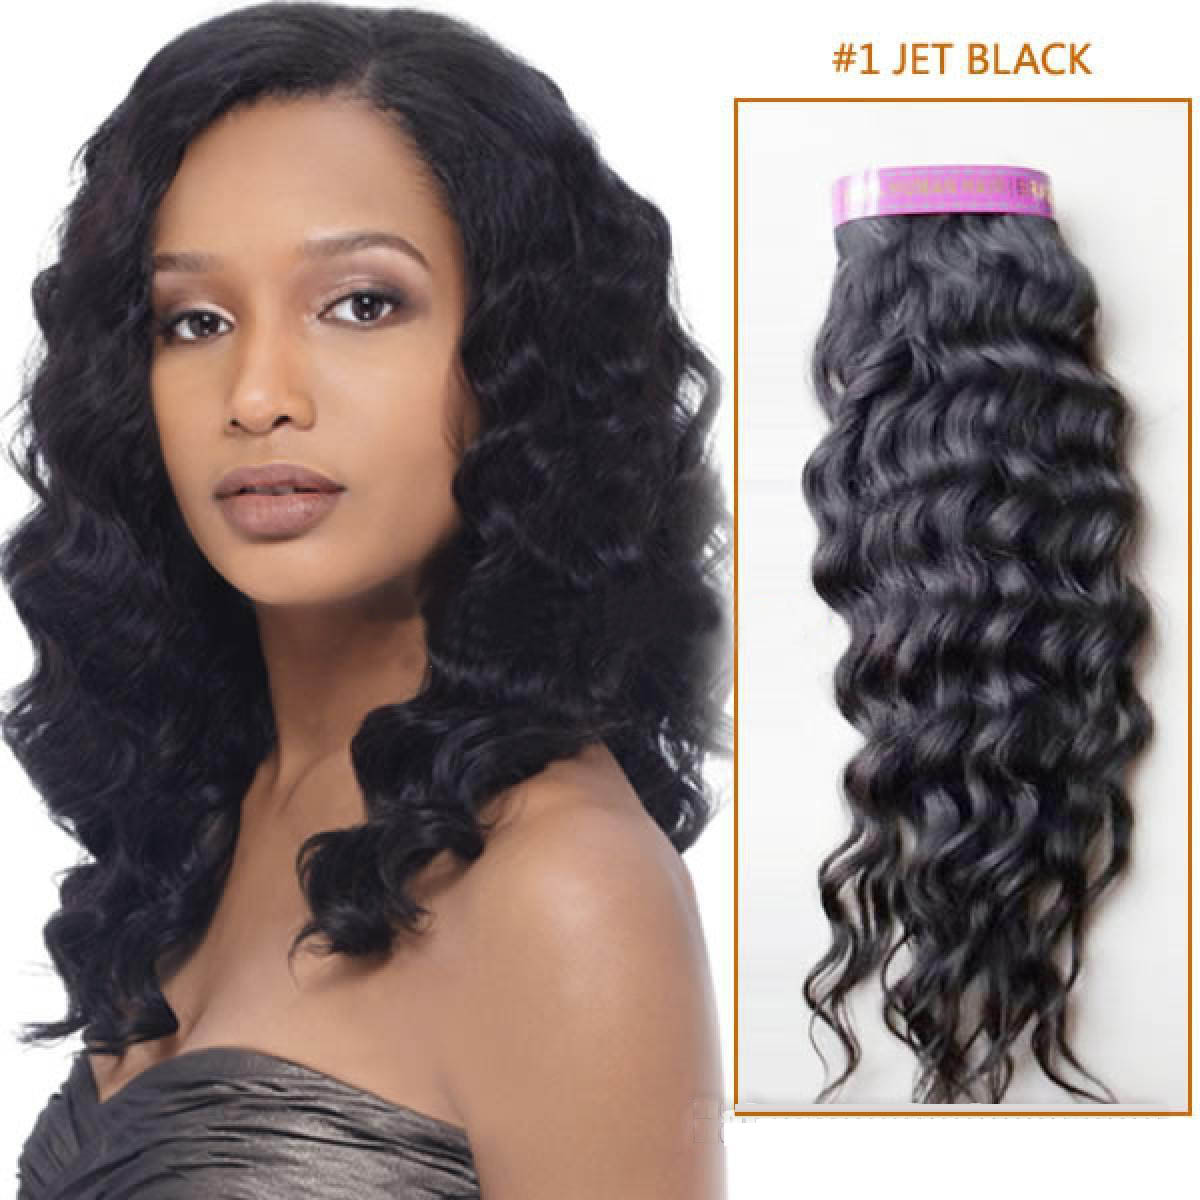 22 Inch 1 Jet Black Curly Indian Remy Hair Wefts